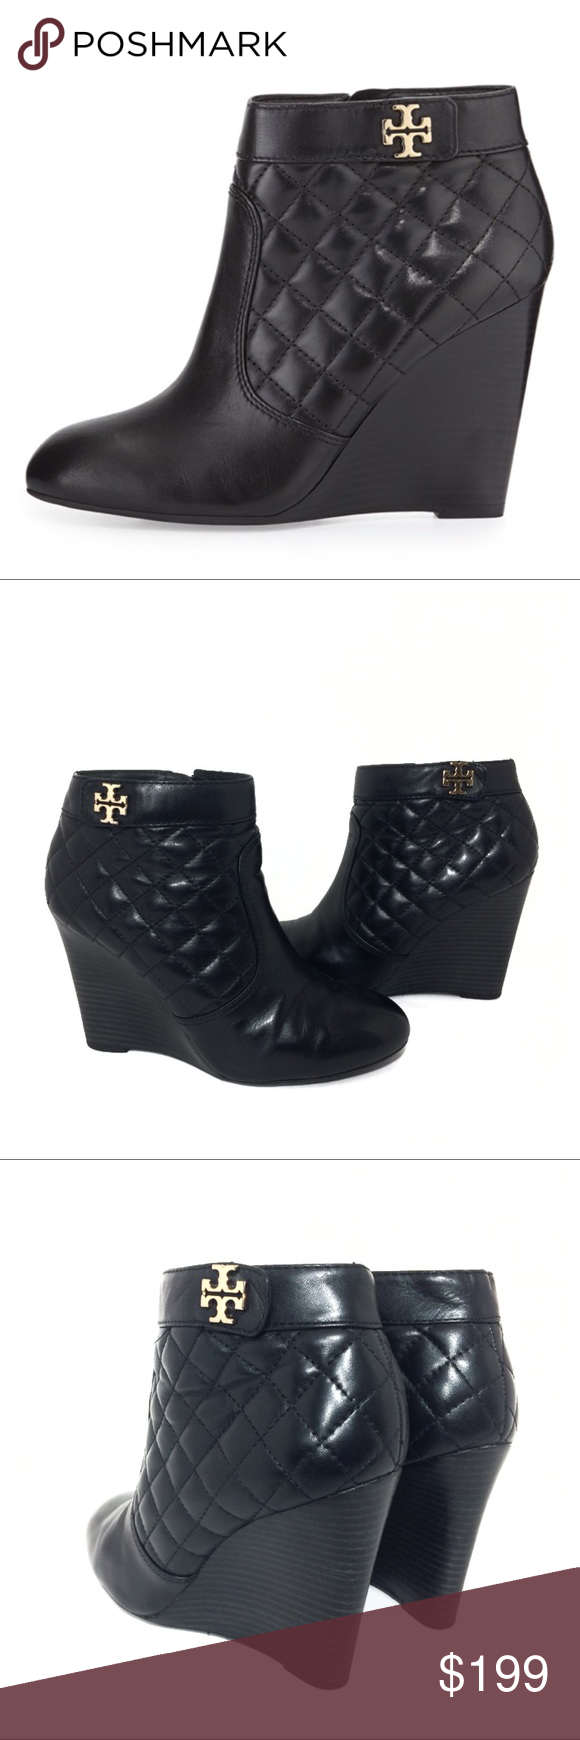 10057d4d8 Tory Burch Leila Quilted Leather Wedge Booties Gorgeous